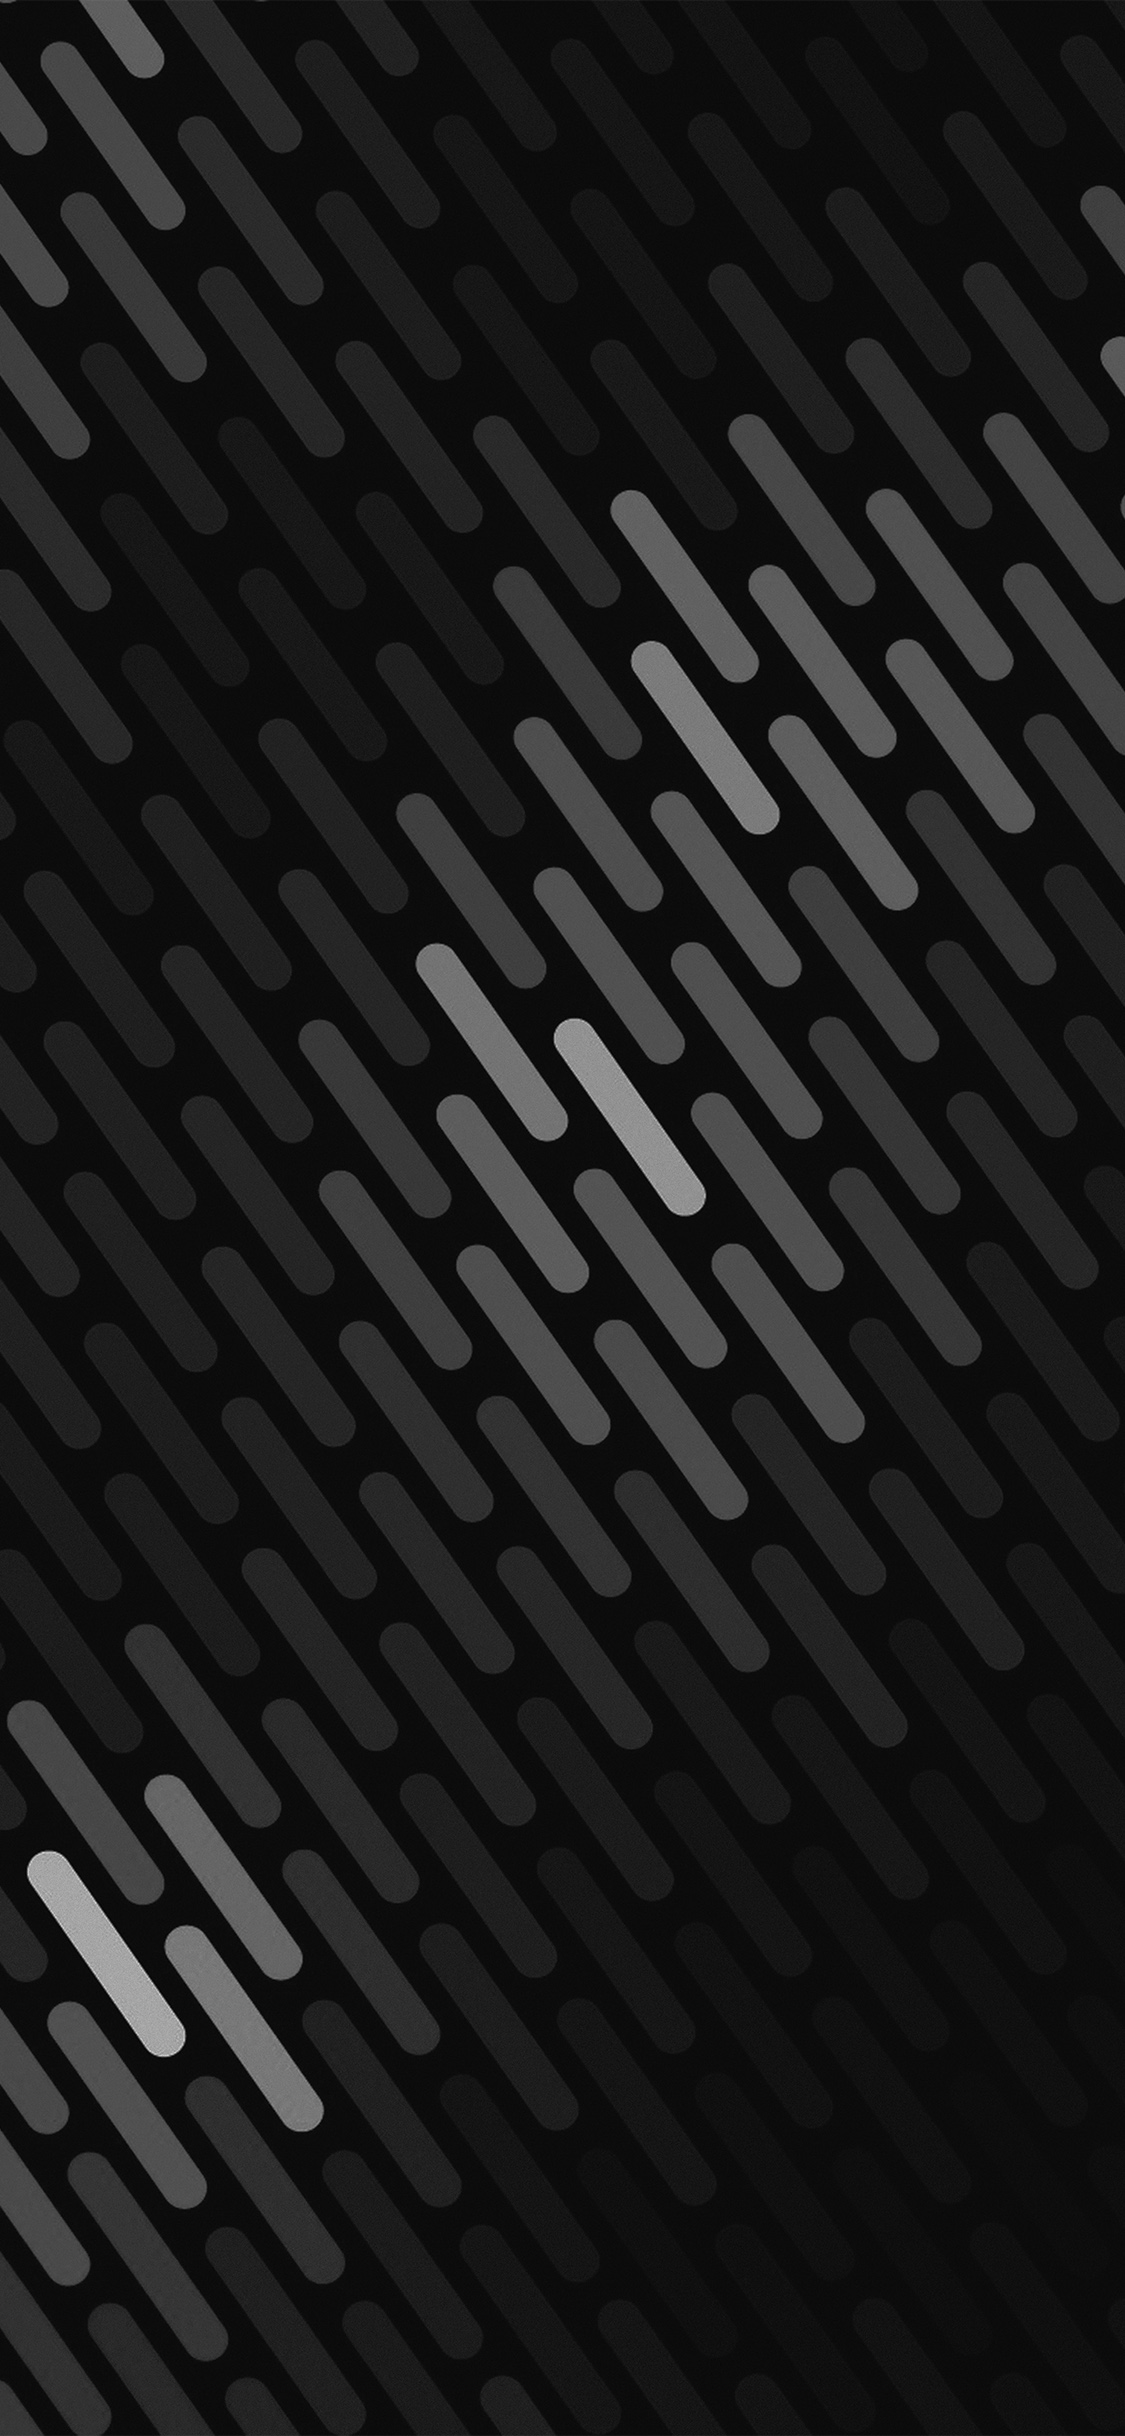 iPhoneXpapers.com-Apple-iPhone-wallpaper-vo00-abstract-dark-bw-dots-lines-pattern